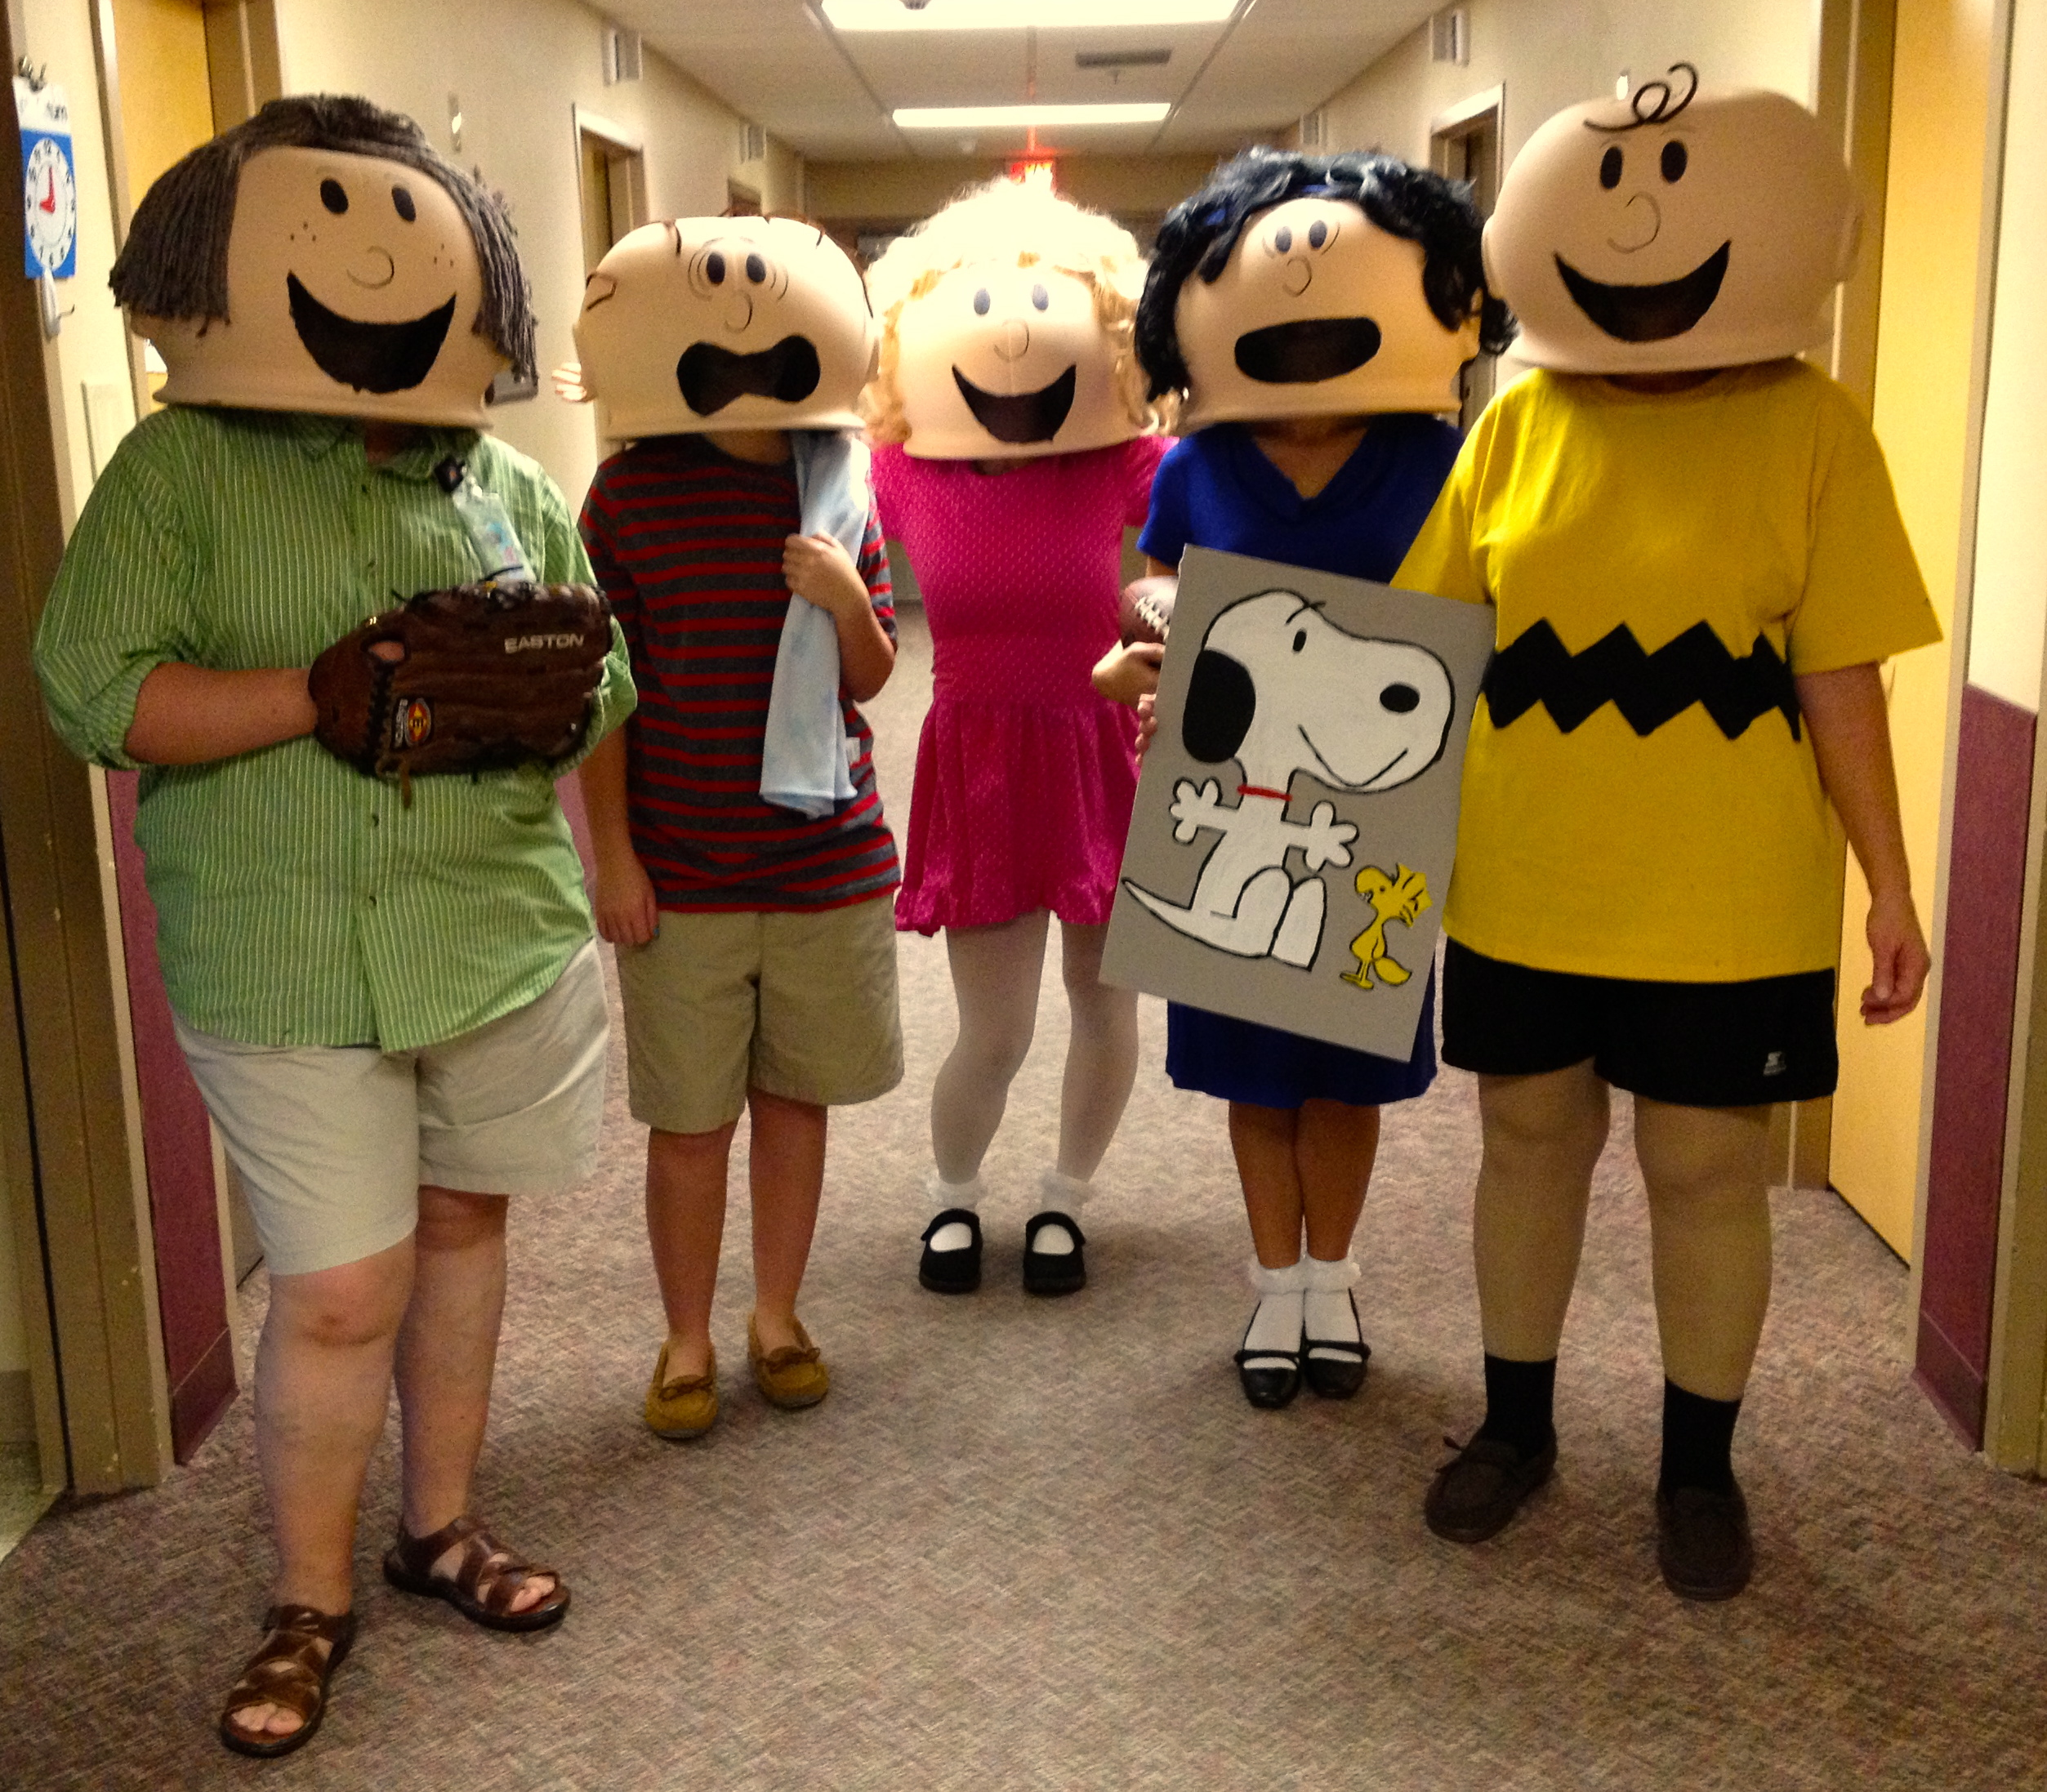 Creepiest Peanuts Costumes 8